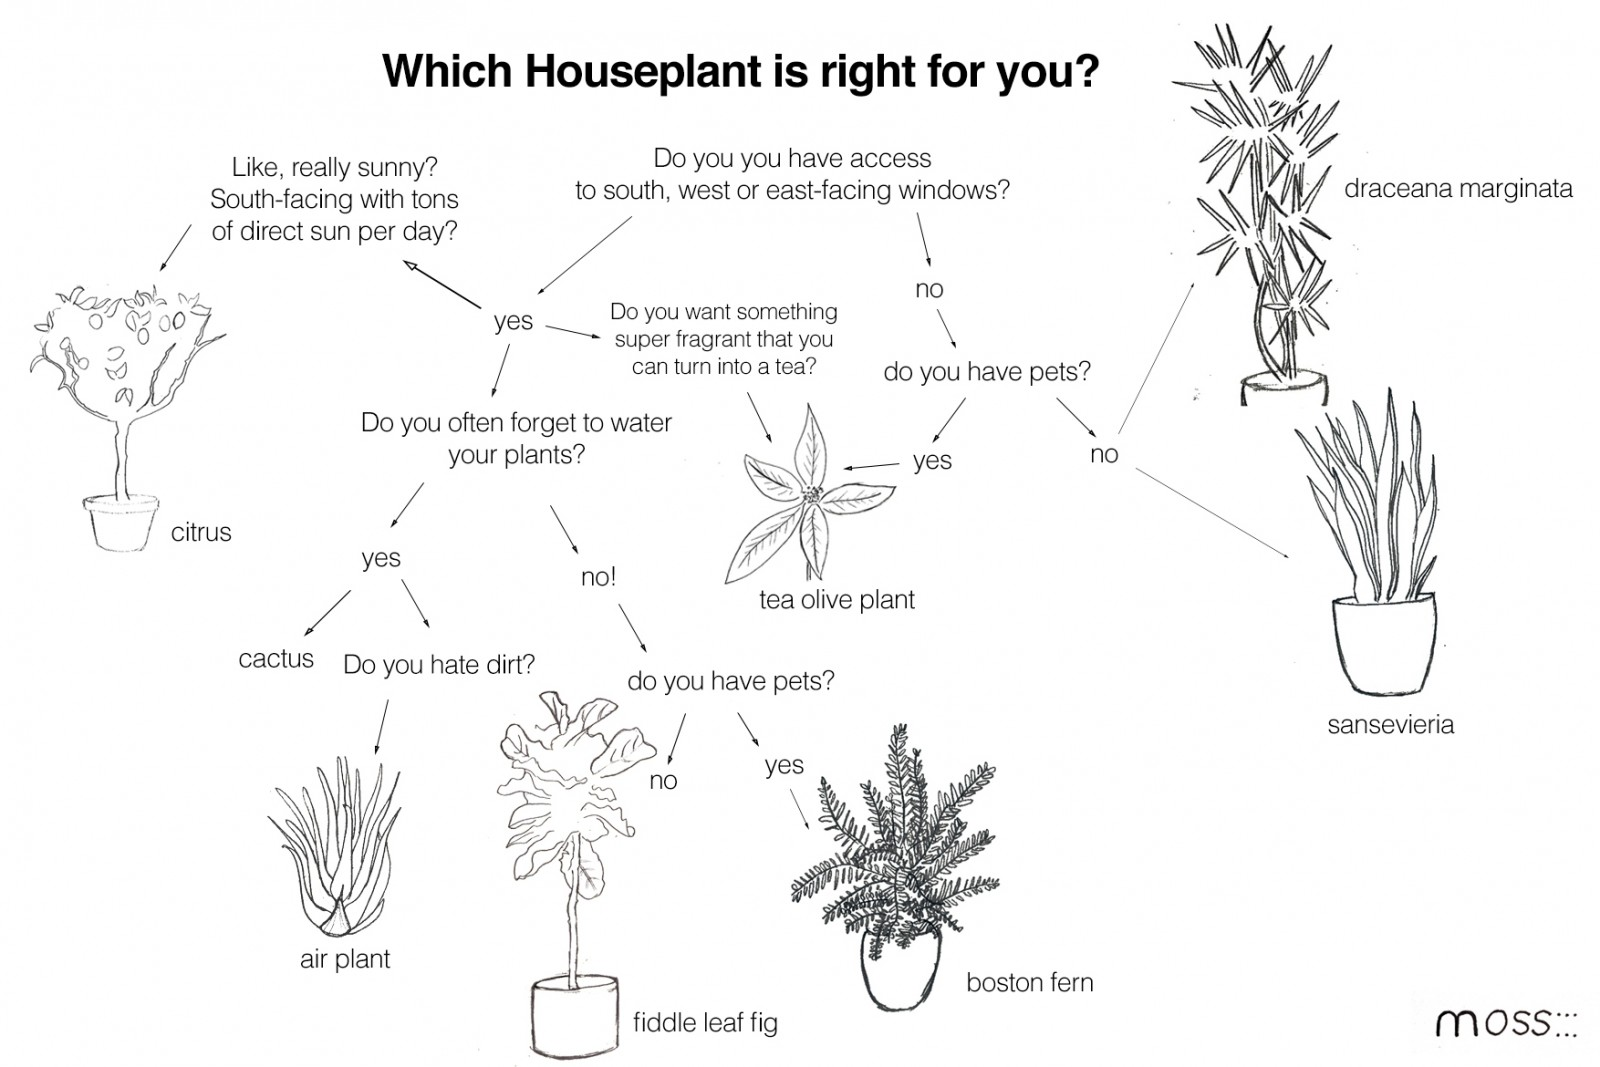 Erie flowchart create a flowchart a guide to houseplants what houseplant you should get moss design related gallery troubleshooting flowchart nvjuhfo Choice Image